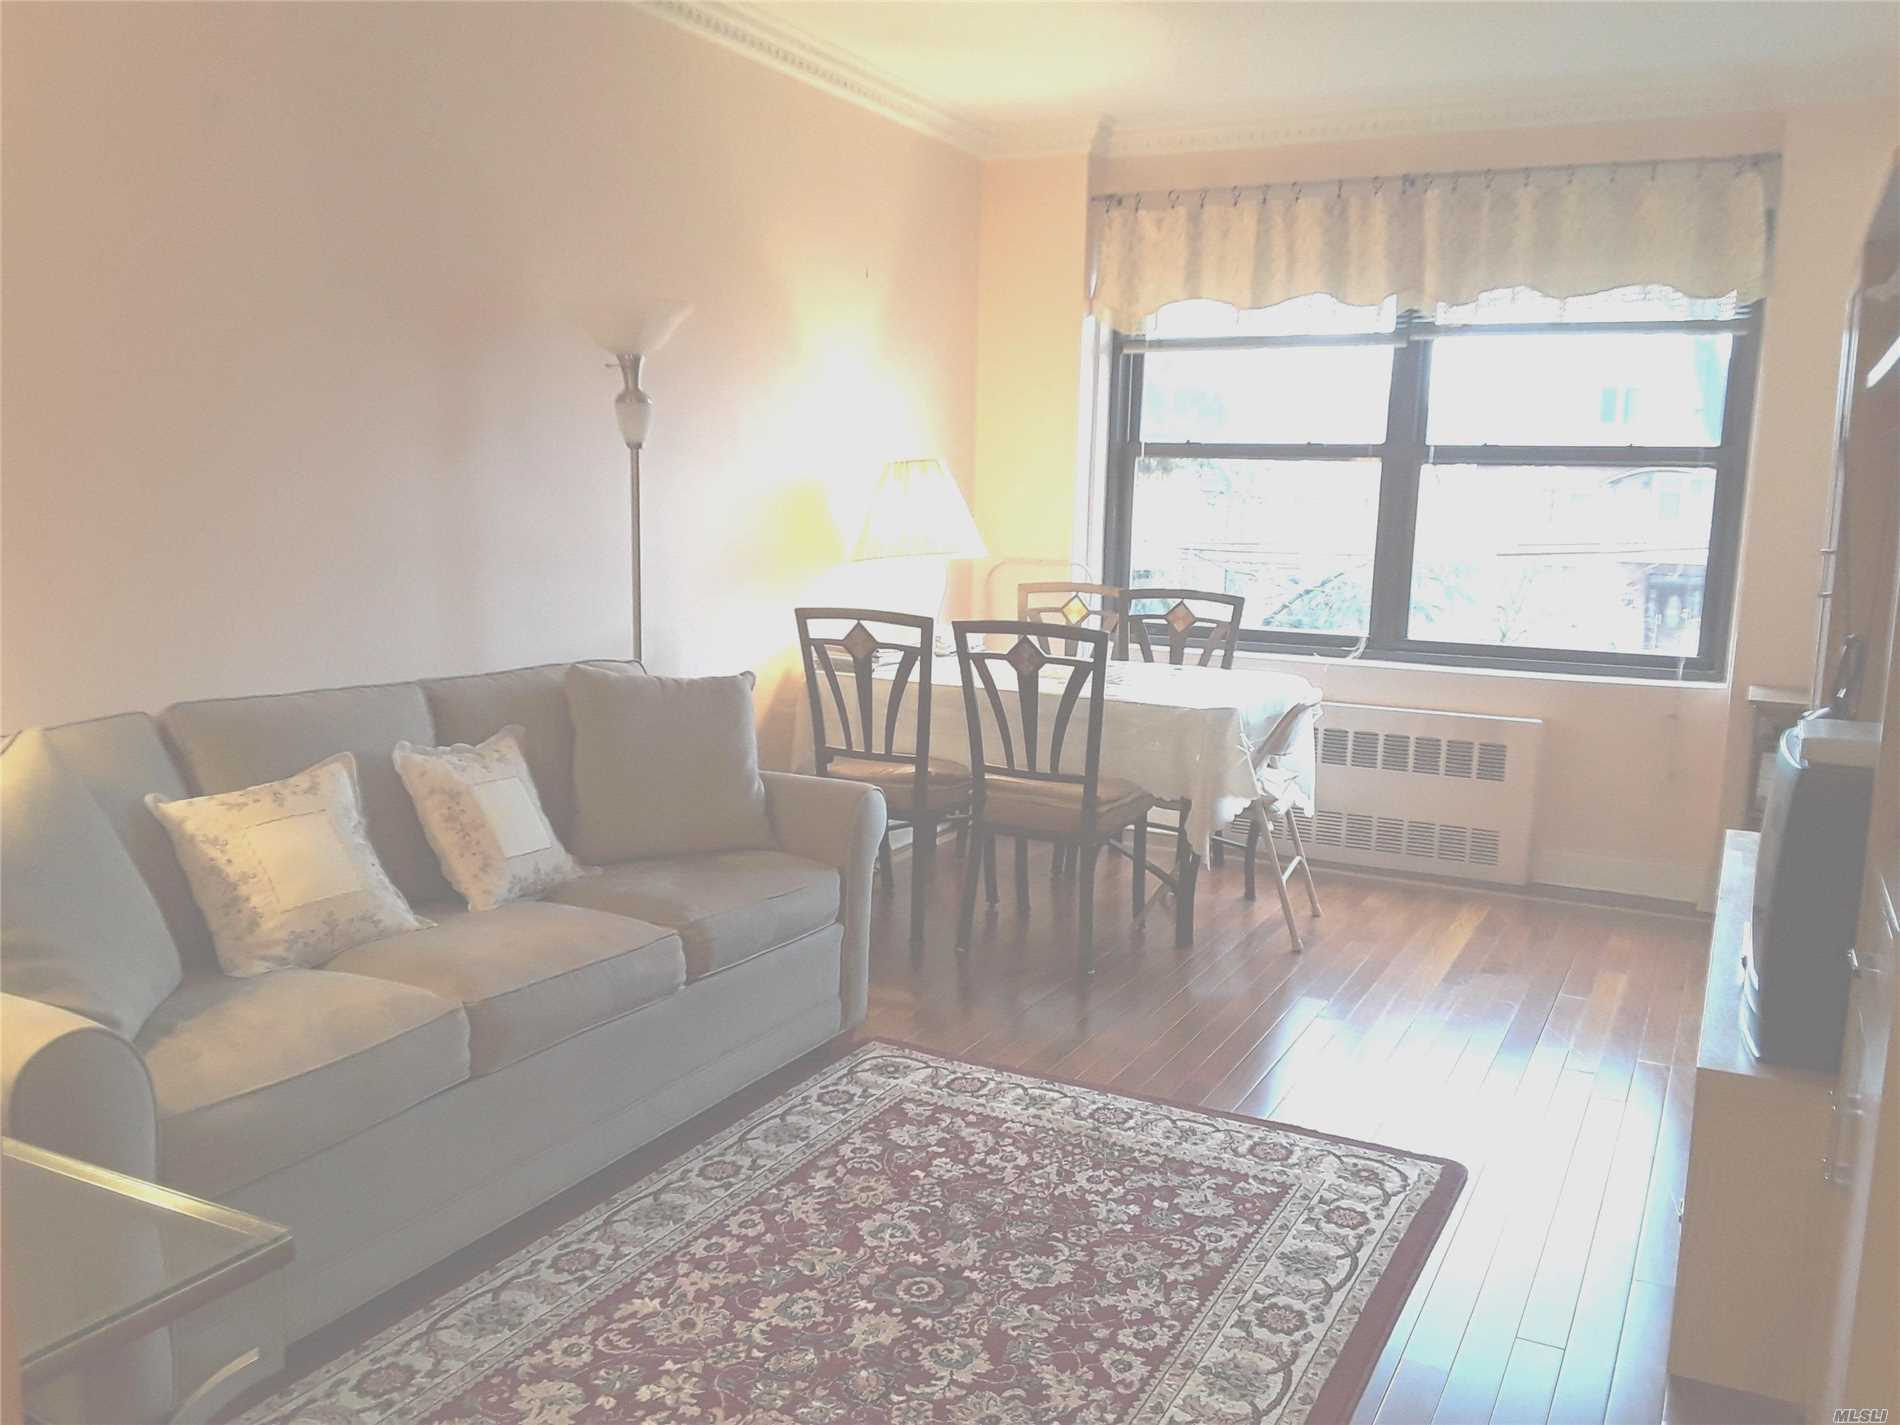 Photo of home for sale at 99 - 40 63 Rd, Rego Park NY